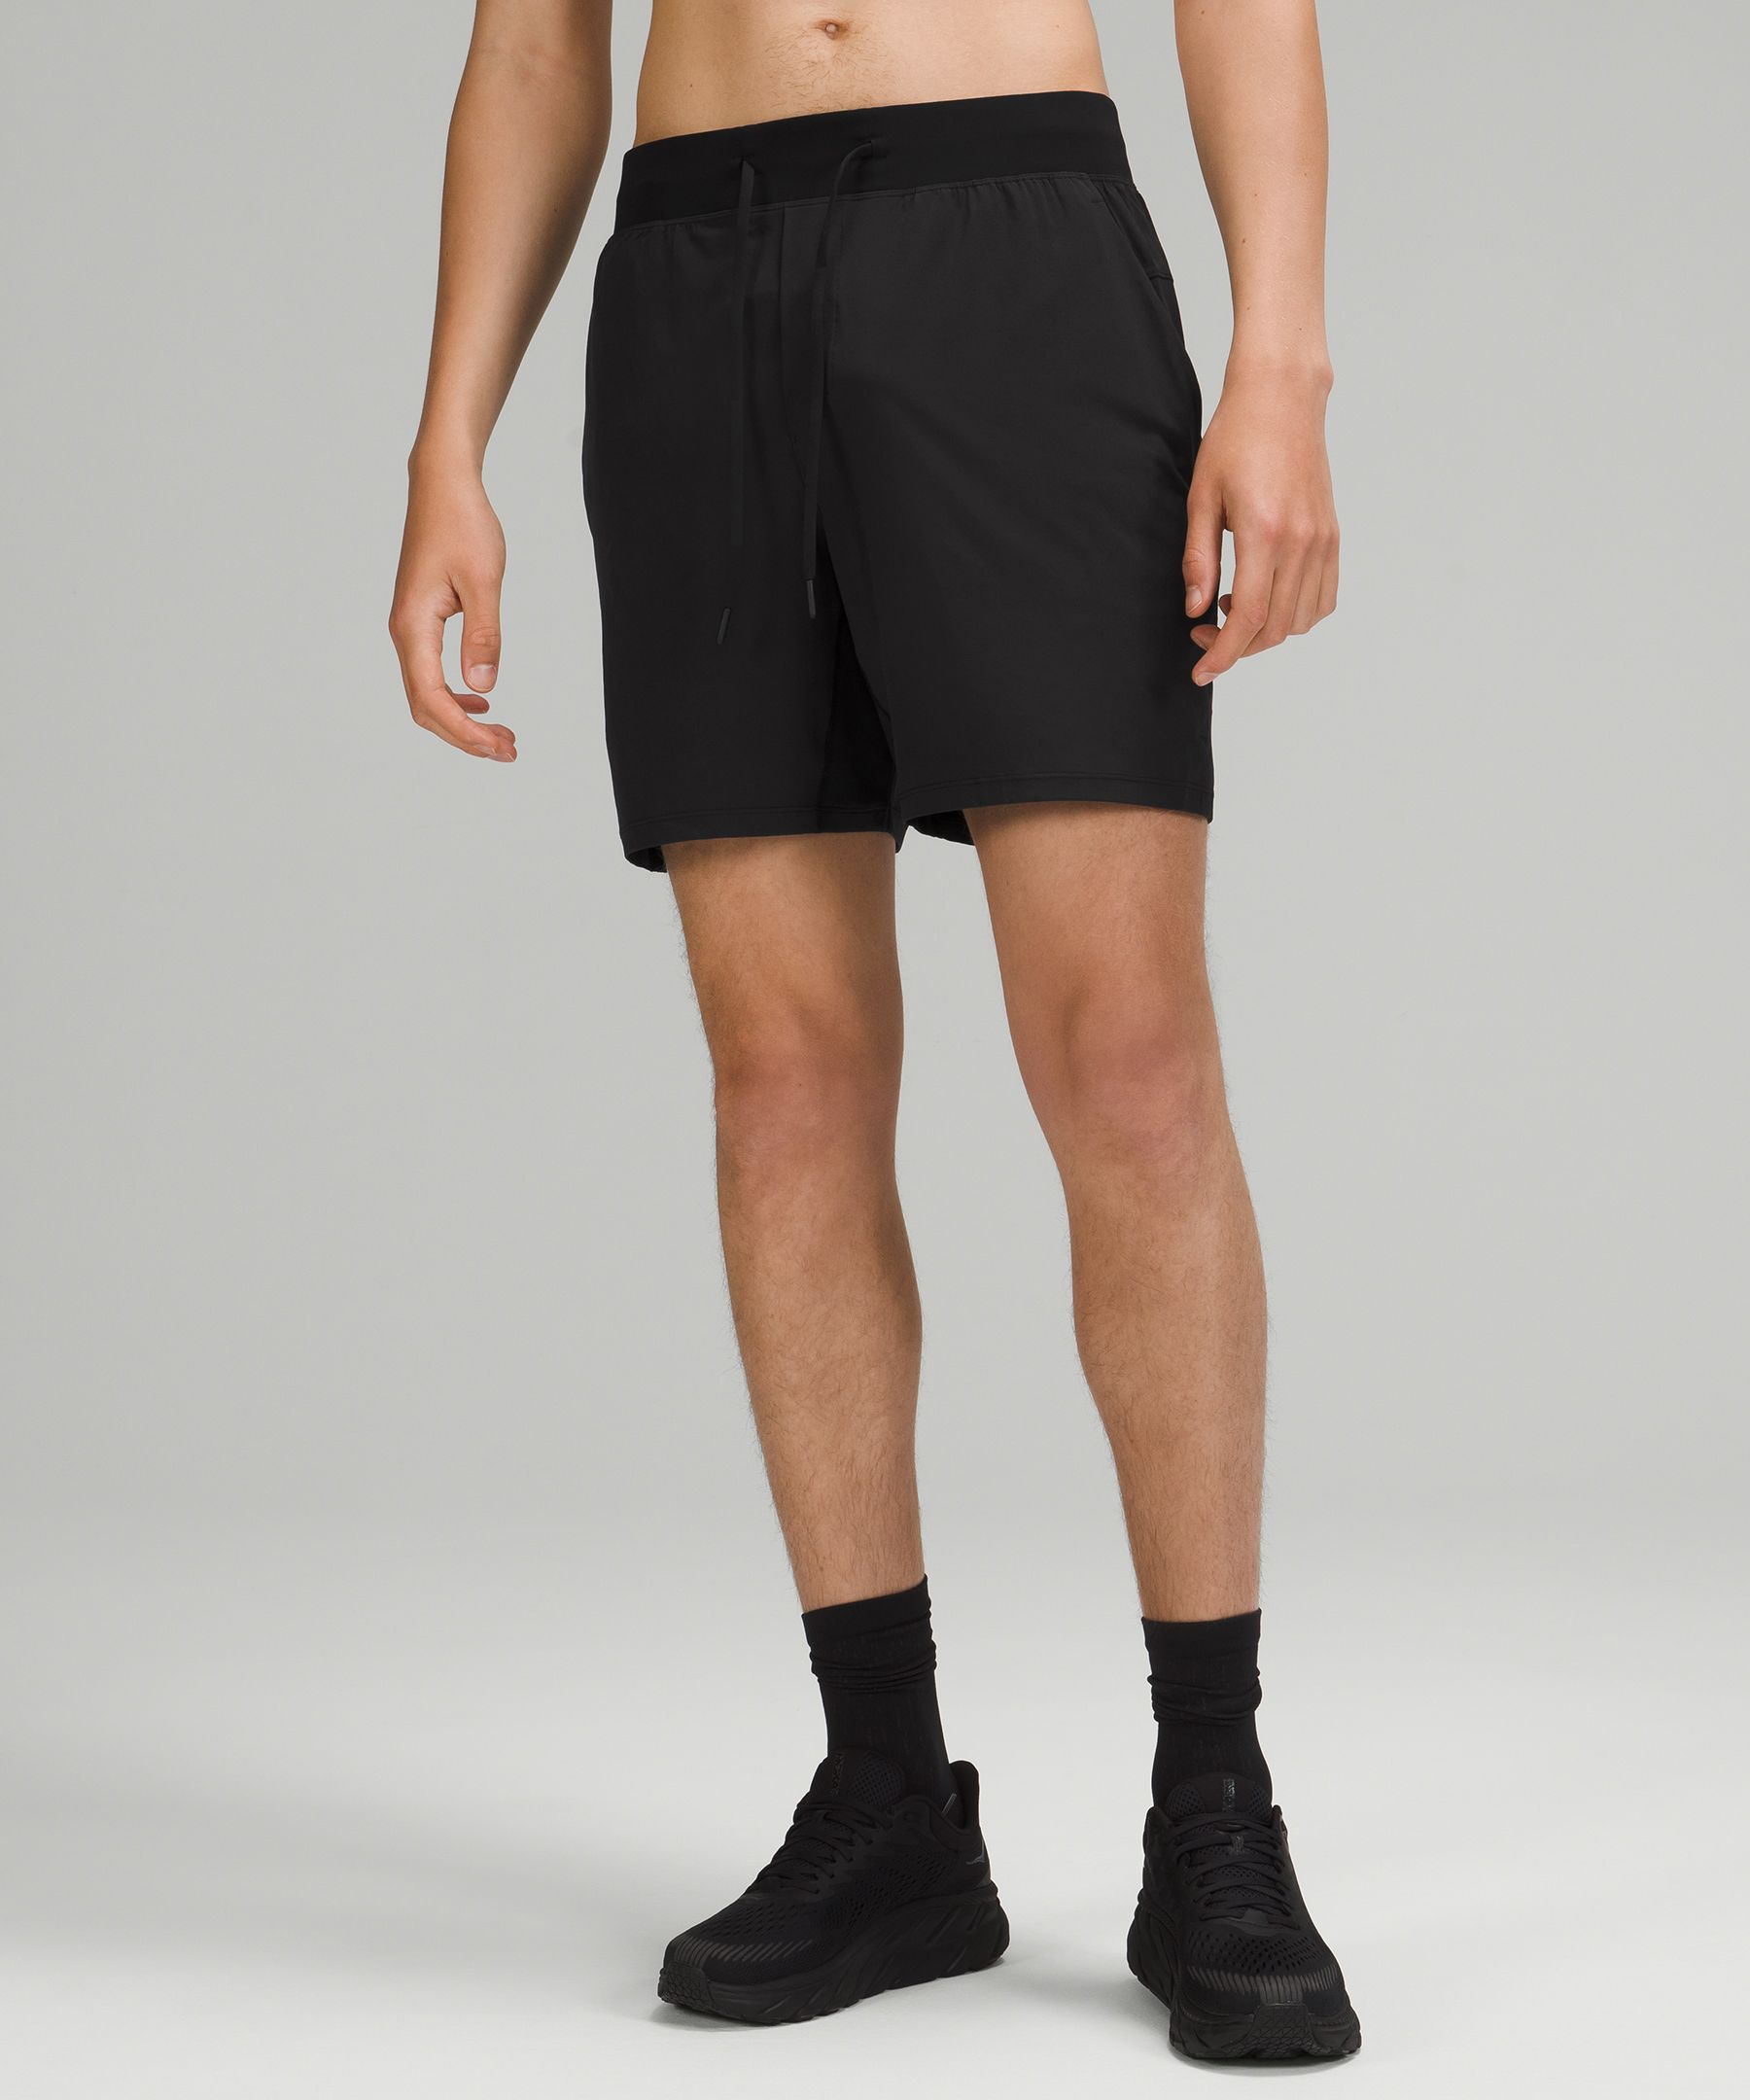 These lightweight, sweat-wicking, and four-way stretch shorts are designed for pushing your sweaty limits.